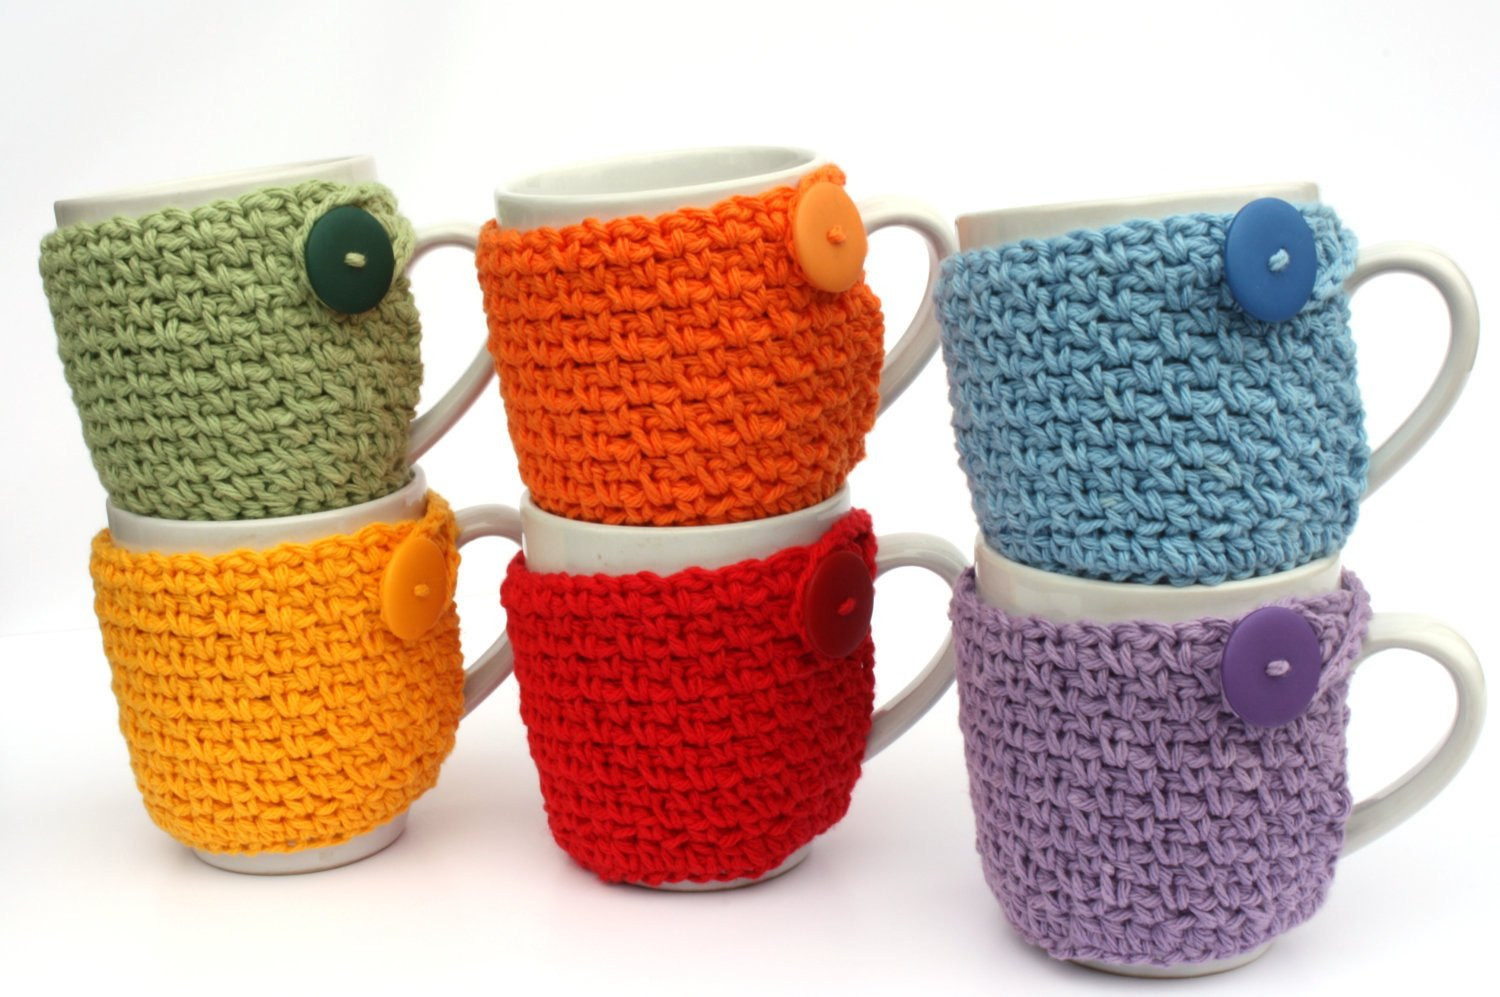 Crochet Coffee Cup Cozy Lovely Coffee Cup Cozy Crochet Cup Sleeve You Pick the by Sweetbriers Of Crochet Coffee Cup Cozy Luxury Happy Holidays Handmade Gift Idea Crochet Heart Coffee